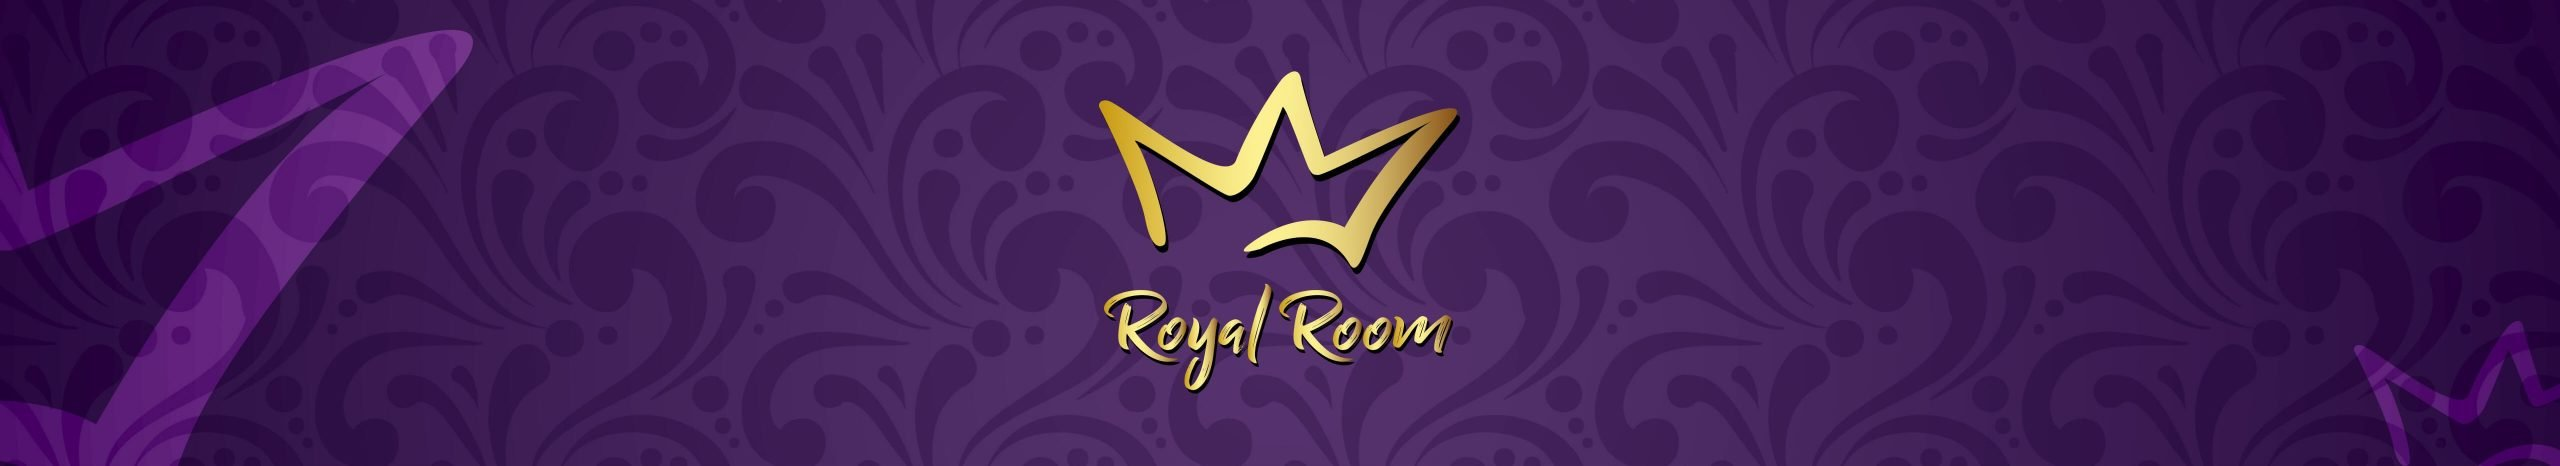 The Royal Room